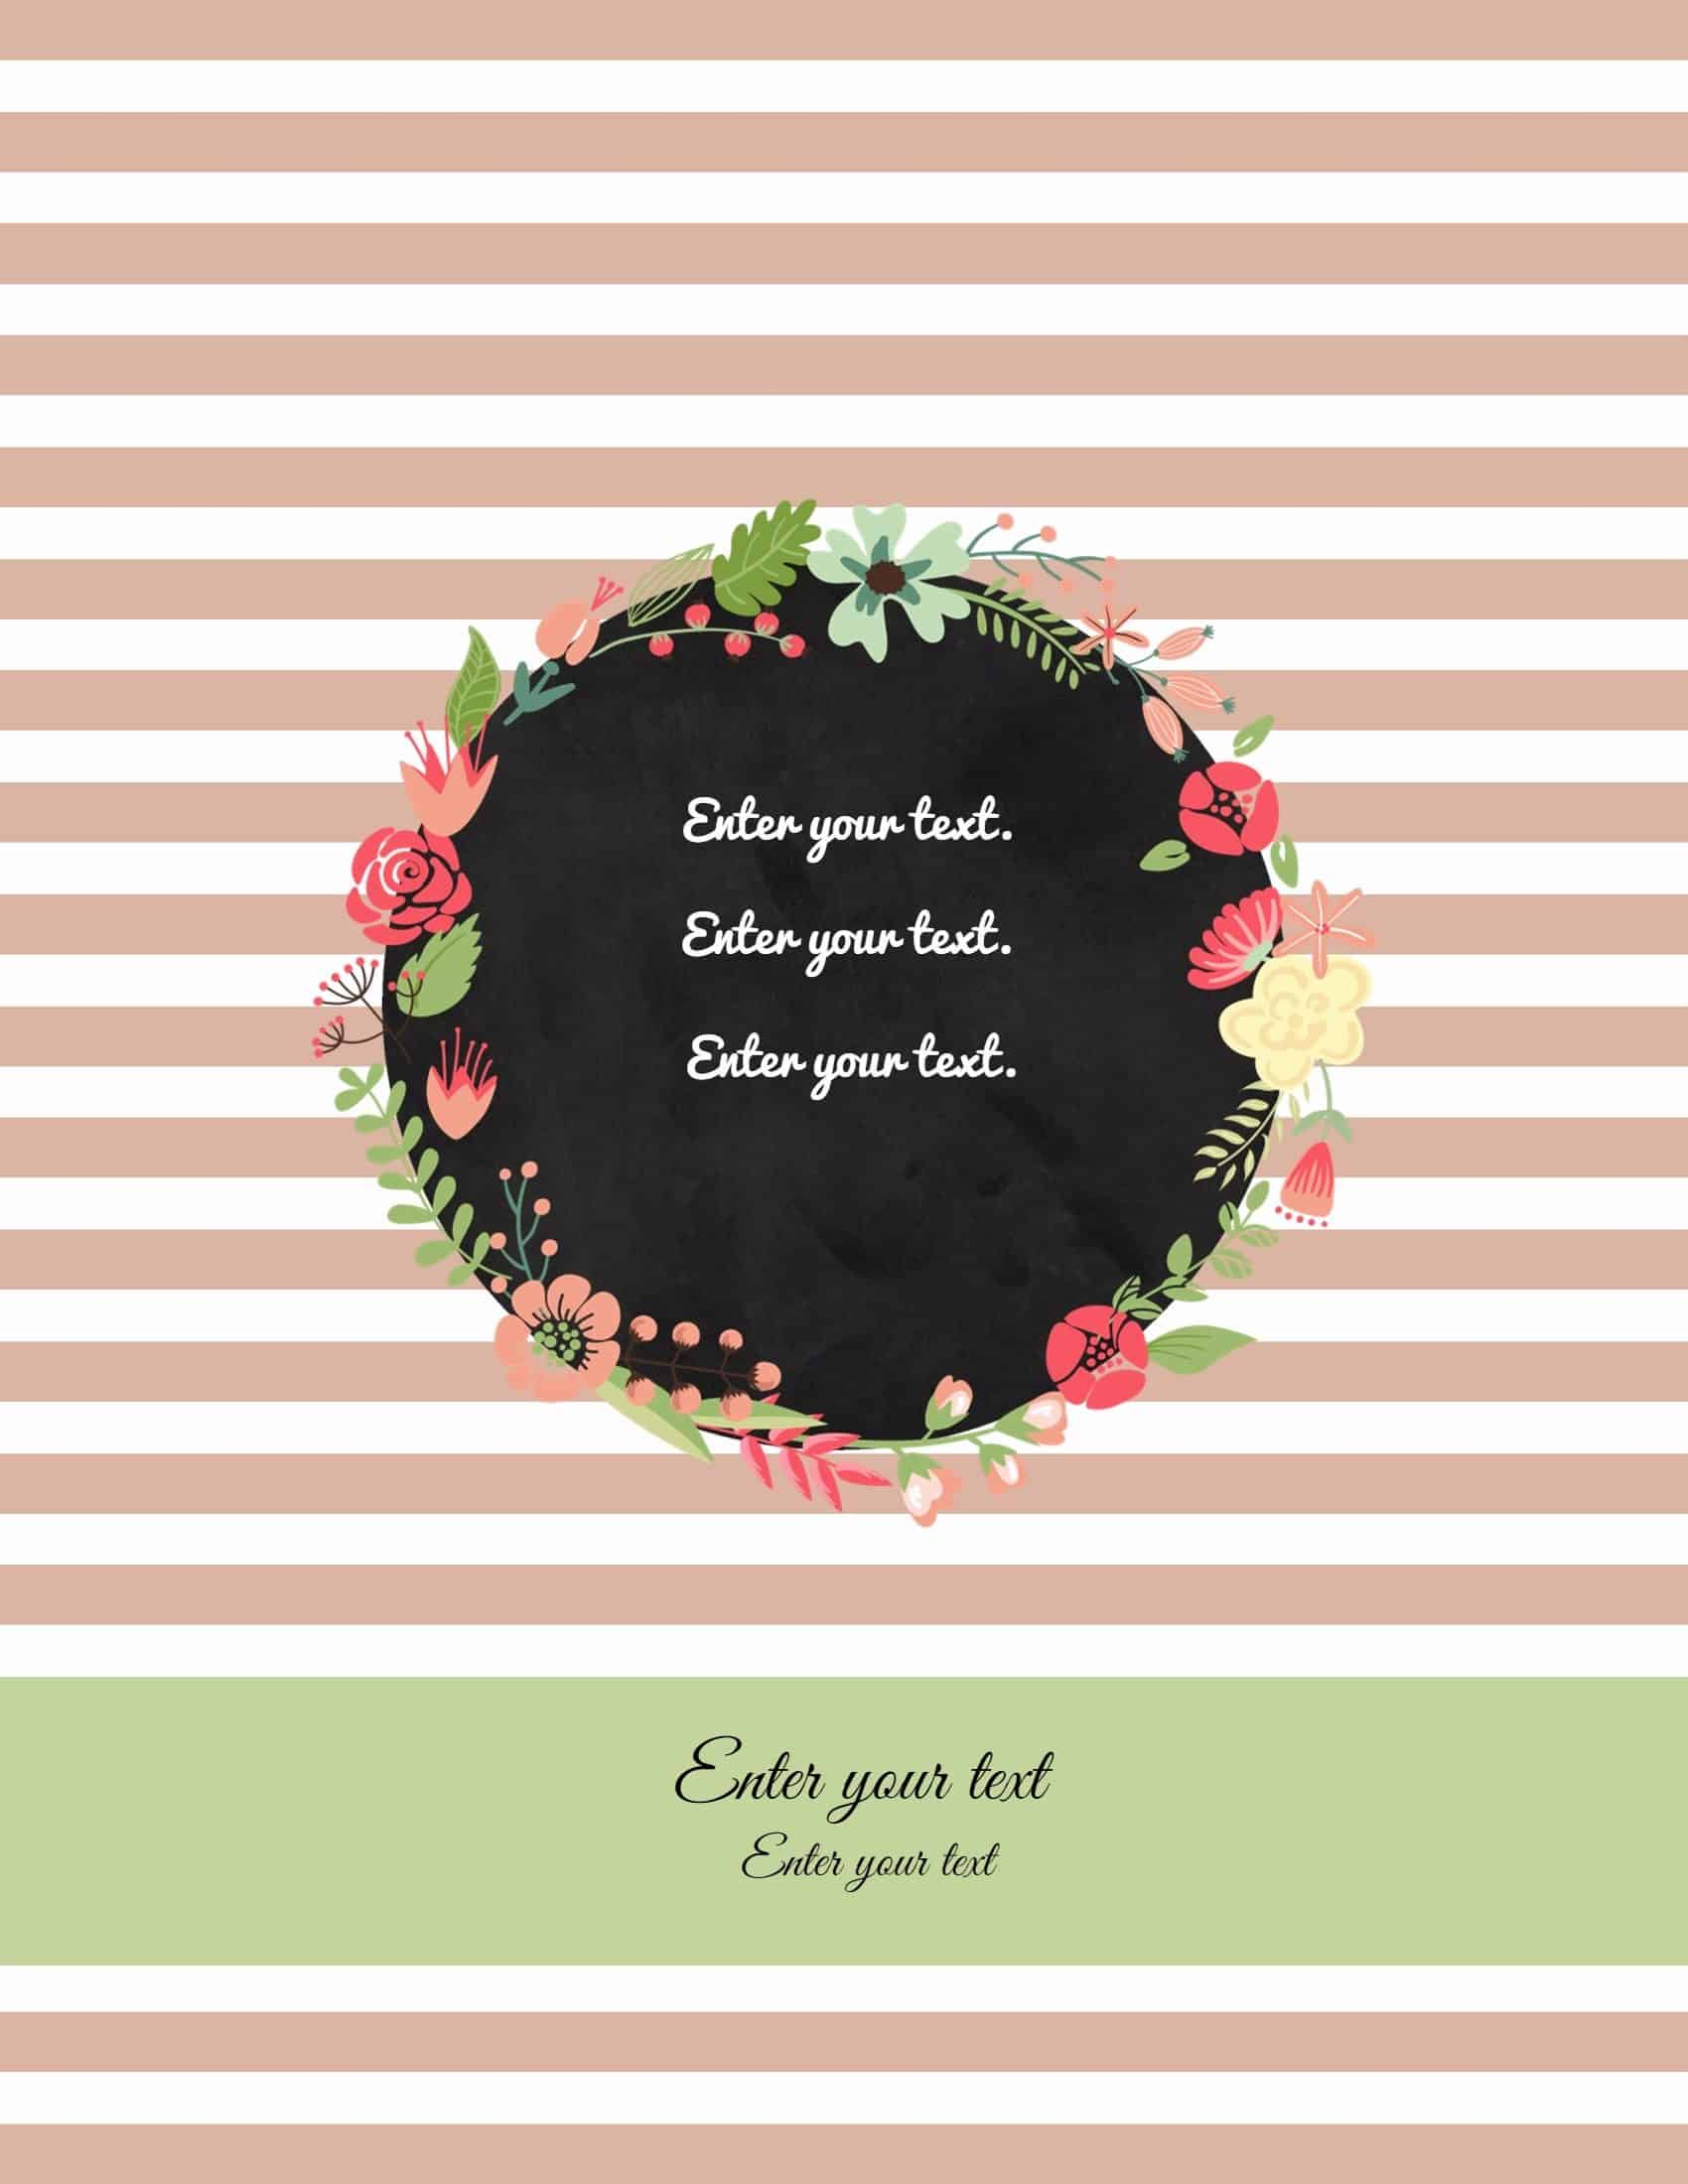 Free Binder Cover Templates | Customize Online & Print At Home | Free! - Free Printable Binder Covers To Color